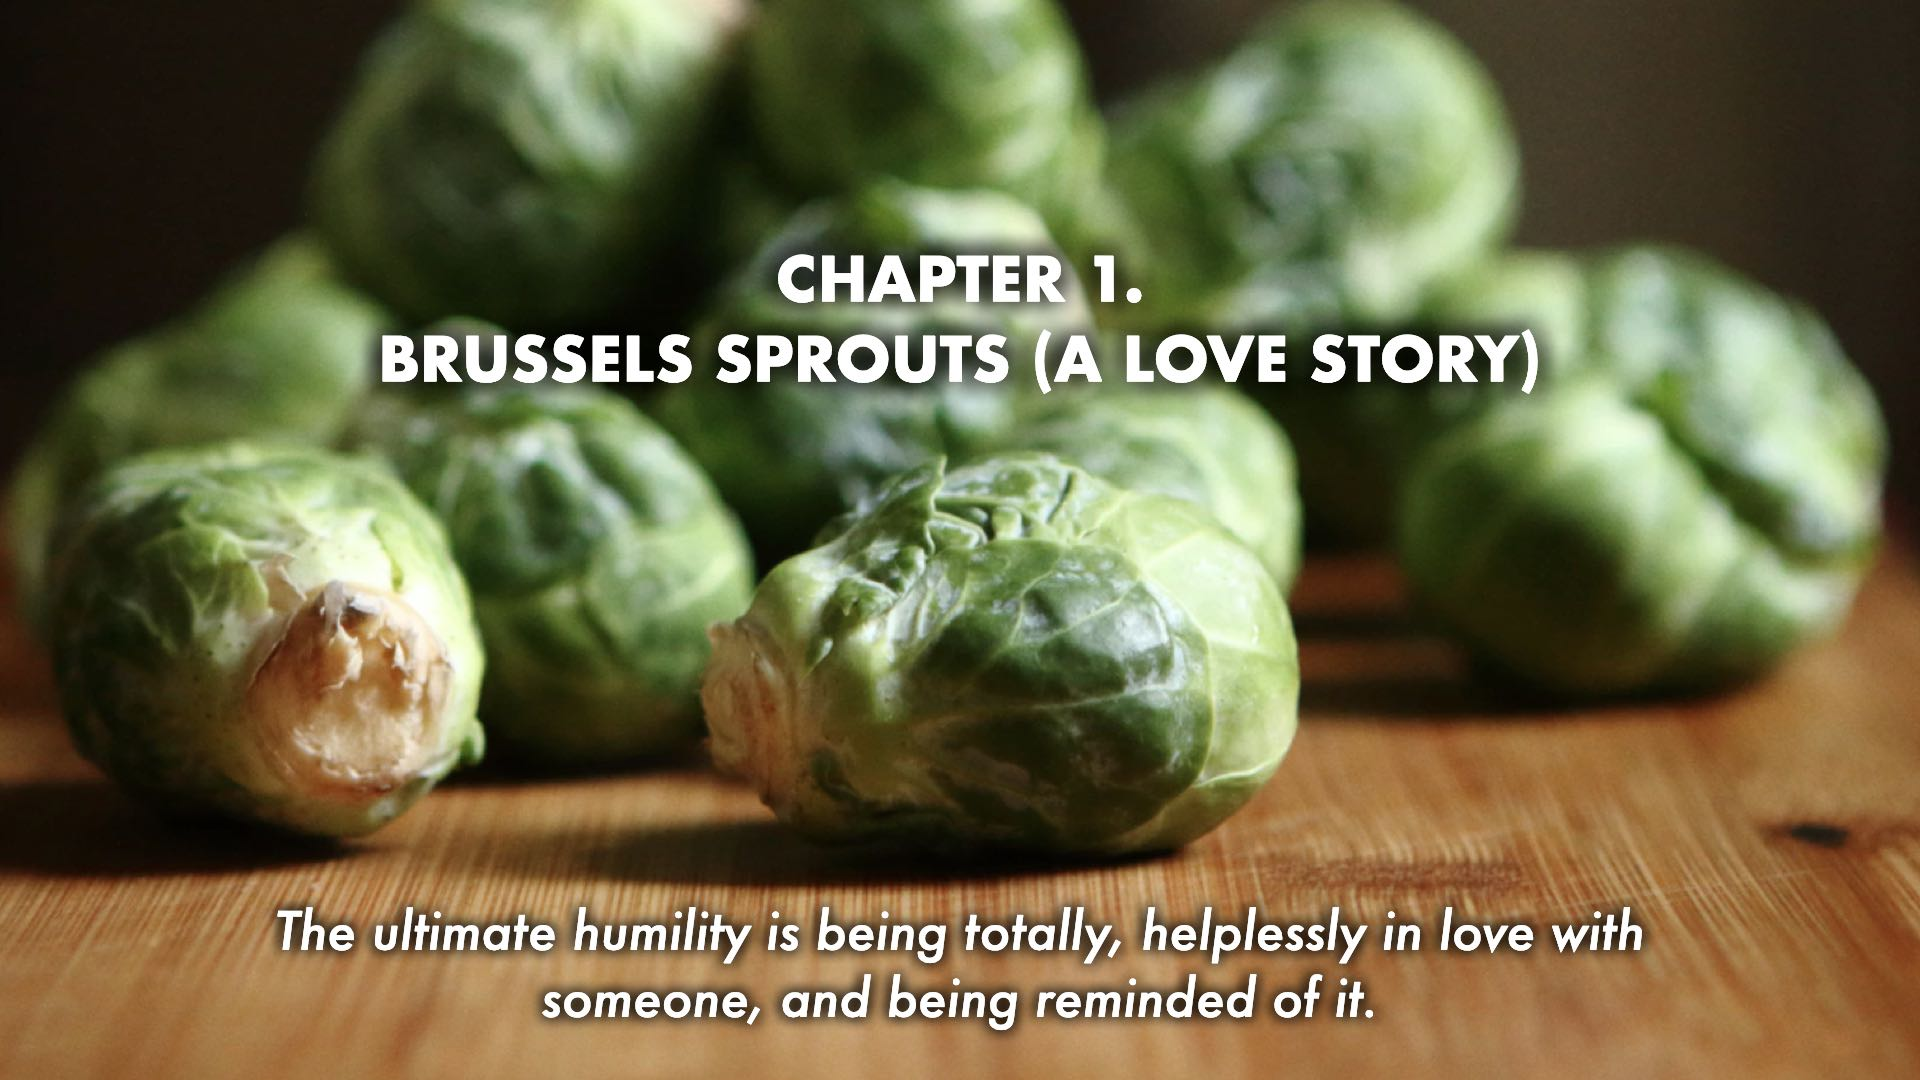 Brussel Sprouts (a Love Story)